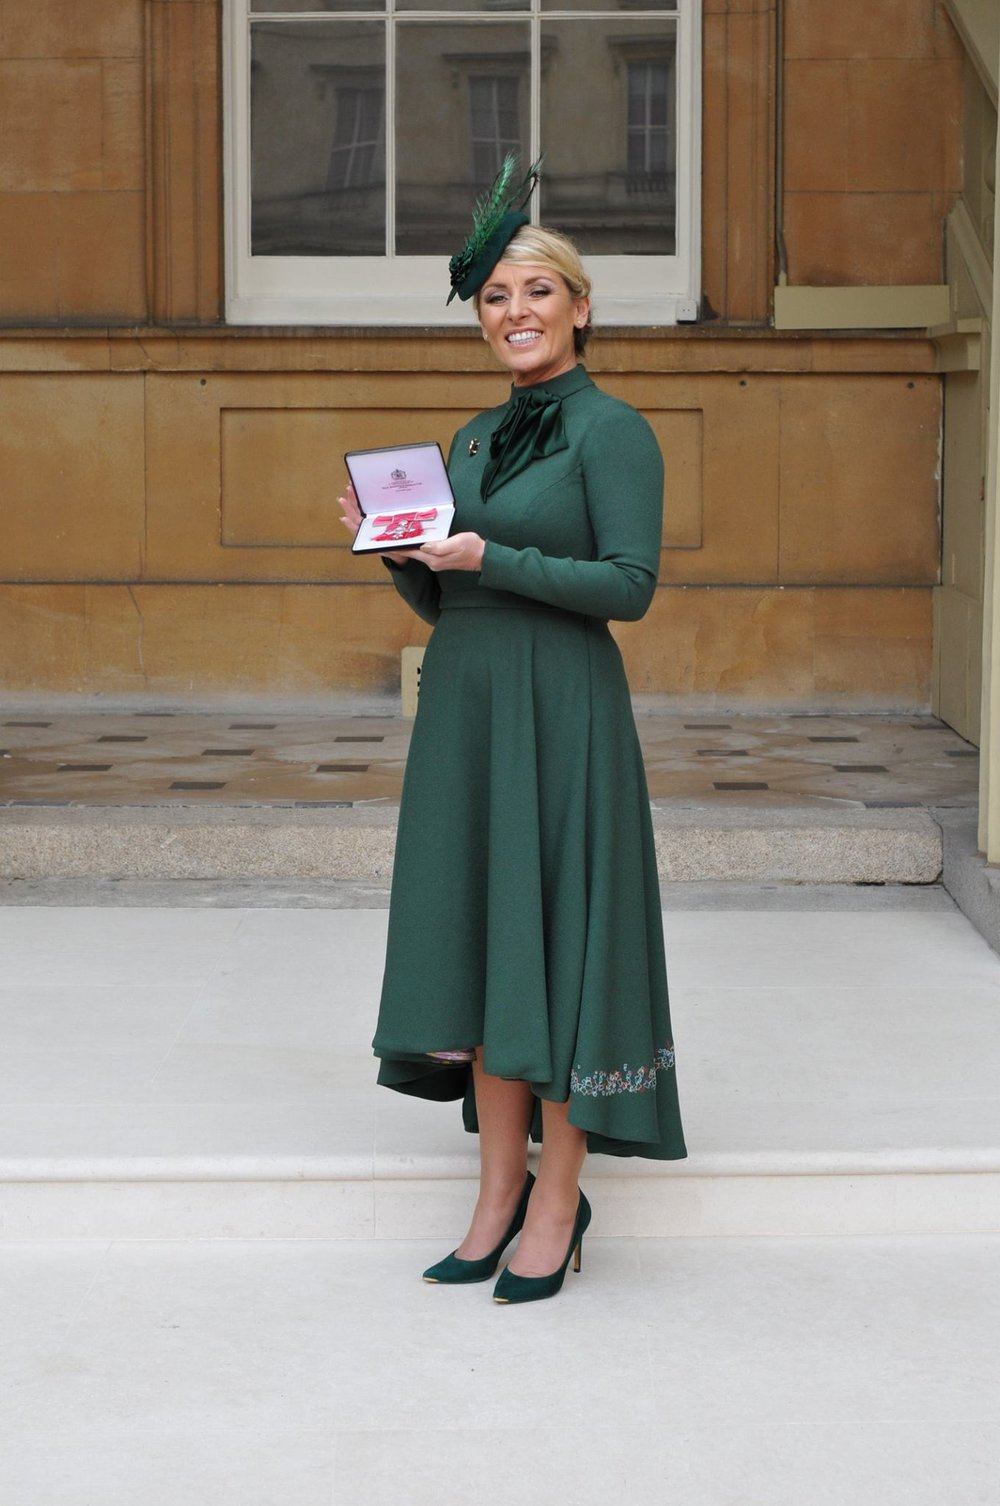 Simone Roche MBE, CEO of Northern Power Women receiving her MBE at Buckingham Palace for services to Gender Equality